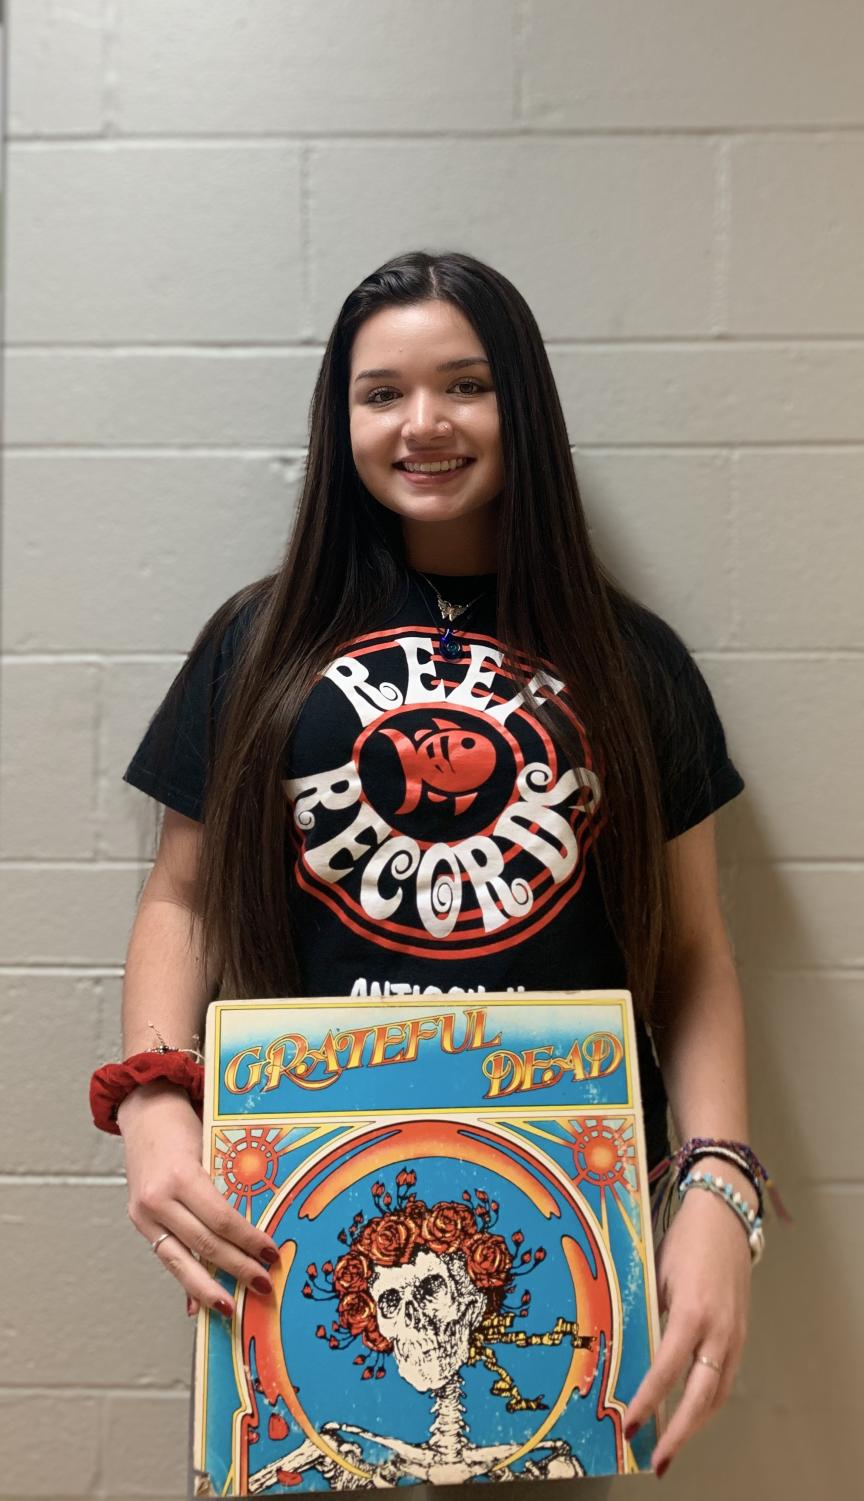 Junior Lily Ocampo purchased her Grateful Dead album from Reef Records. Her favorite songs on the album include Mama Tried and The Other One.